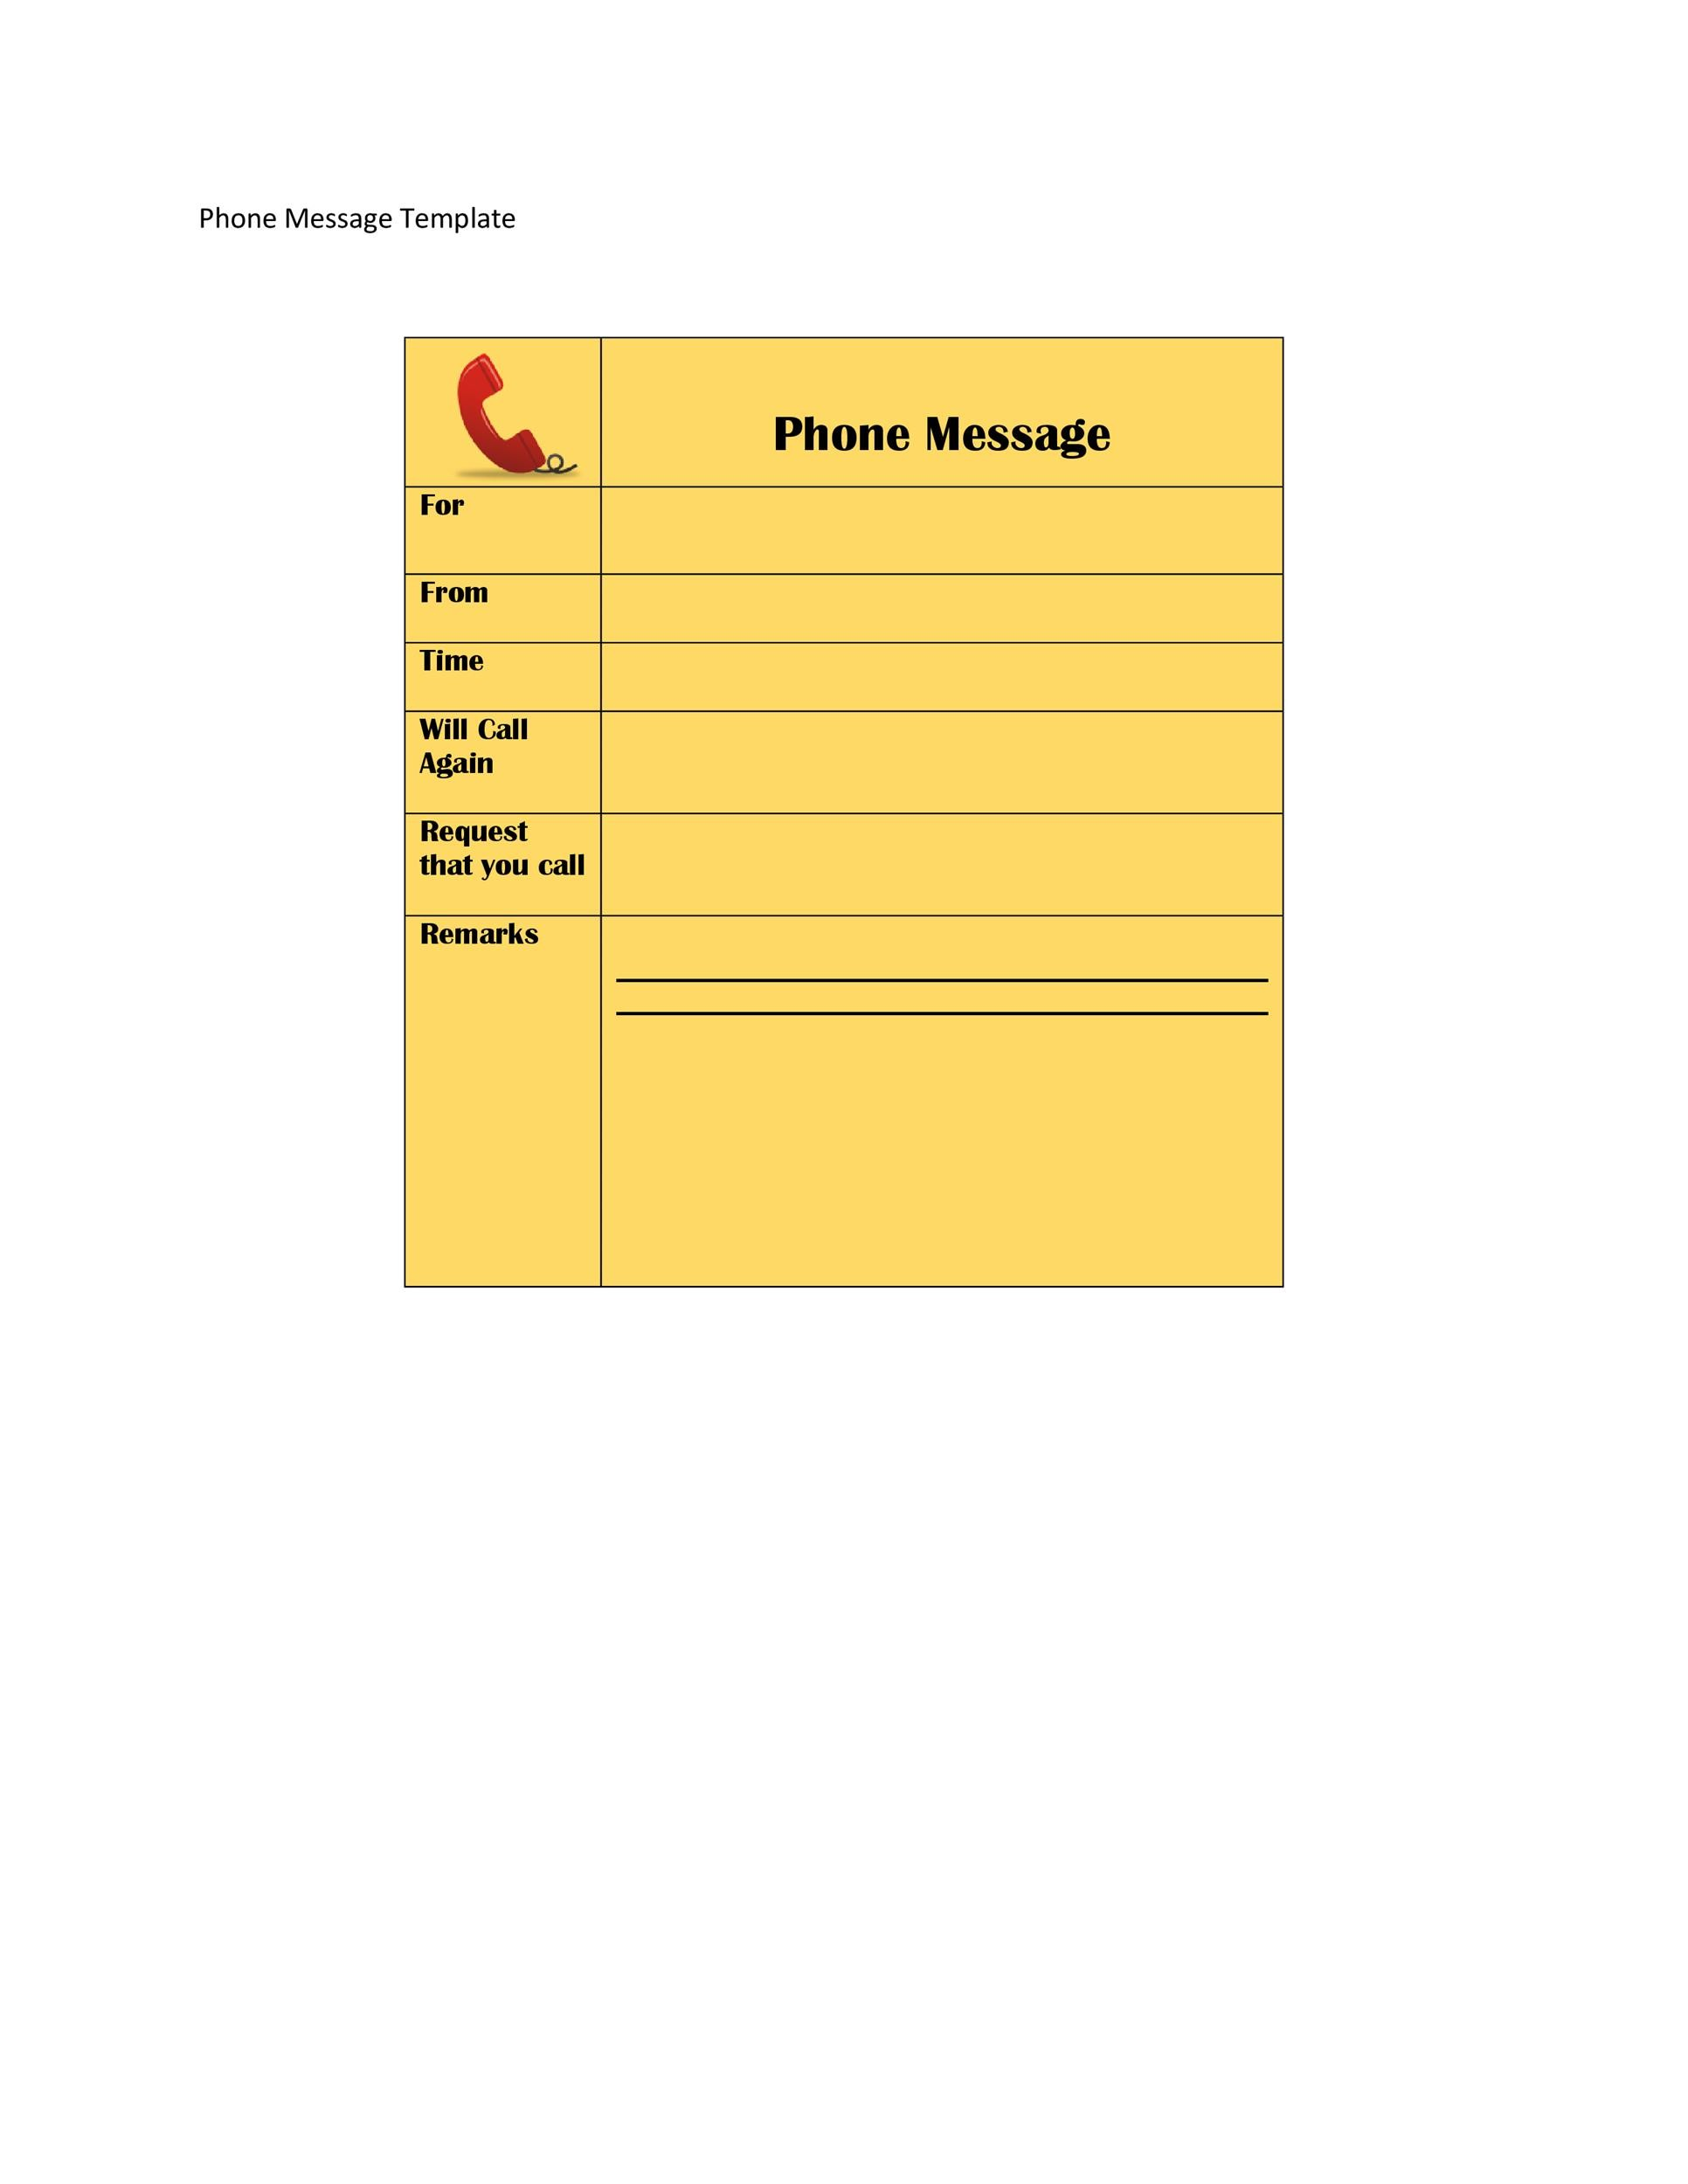 Free phone message template 28